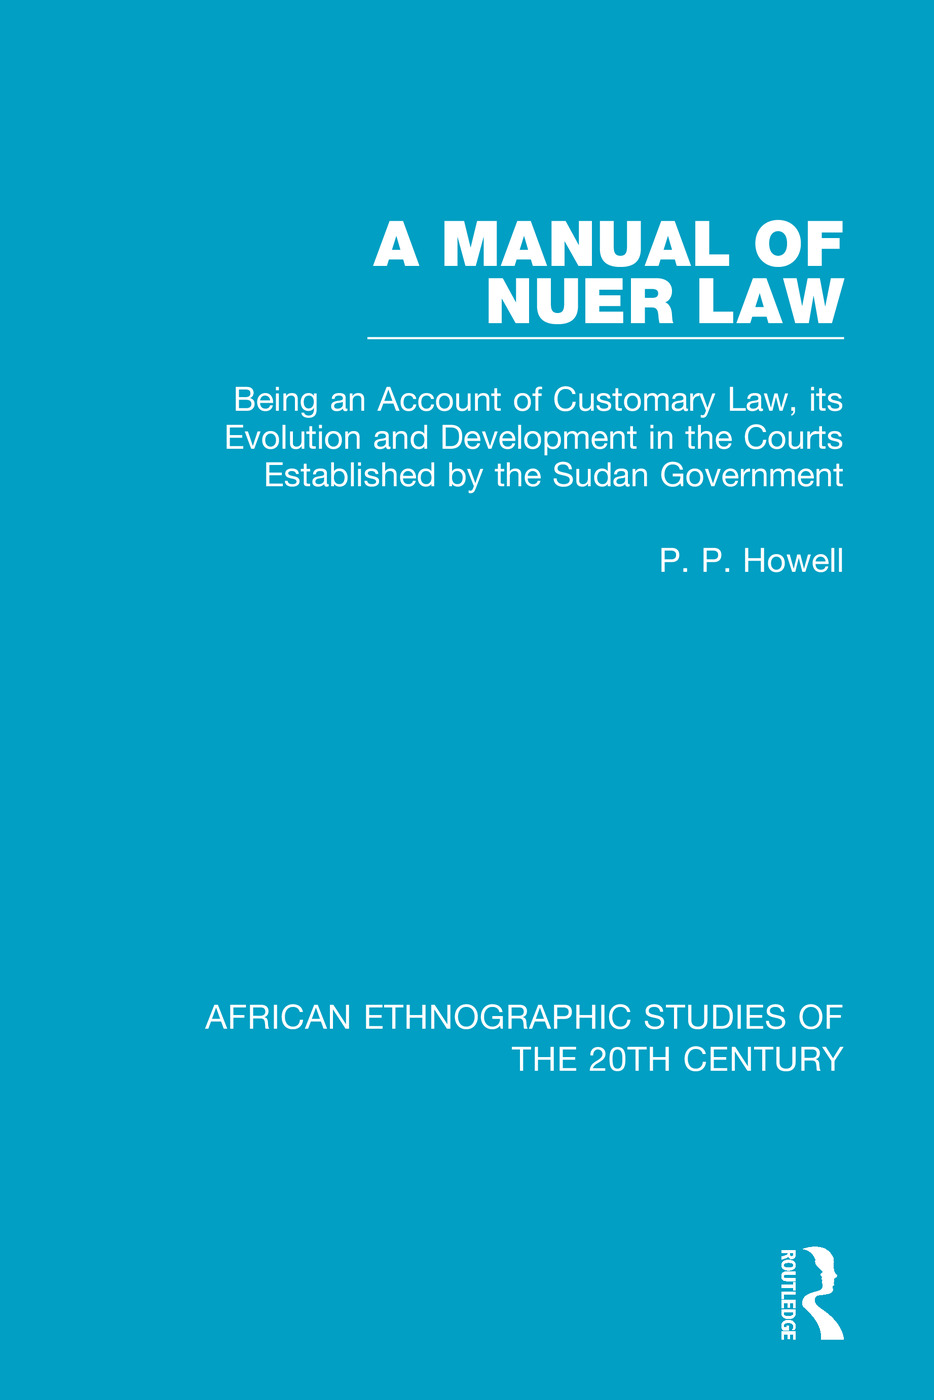 A Manual of Nuer Law: Being an Account of Customary Law, its Evolution and Development in the Courts Established by the Sudan Government, 1st Edition (Paperback) book cover